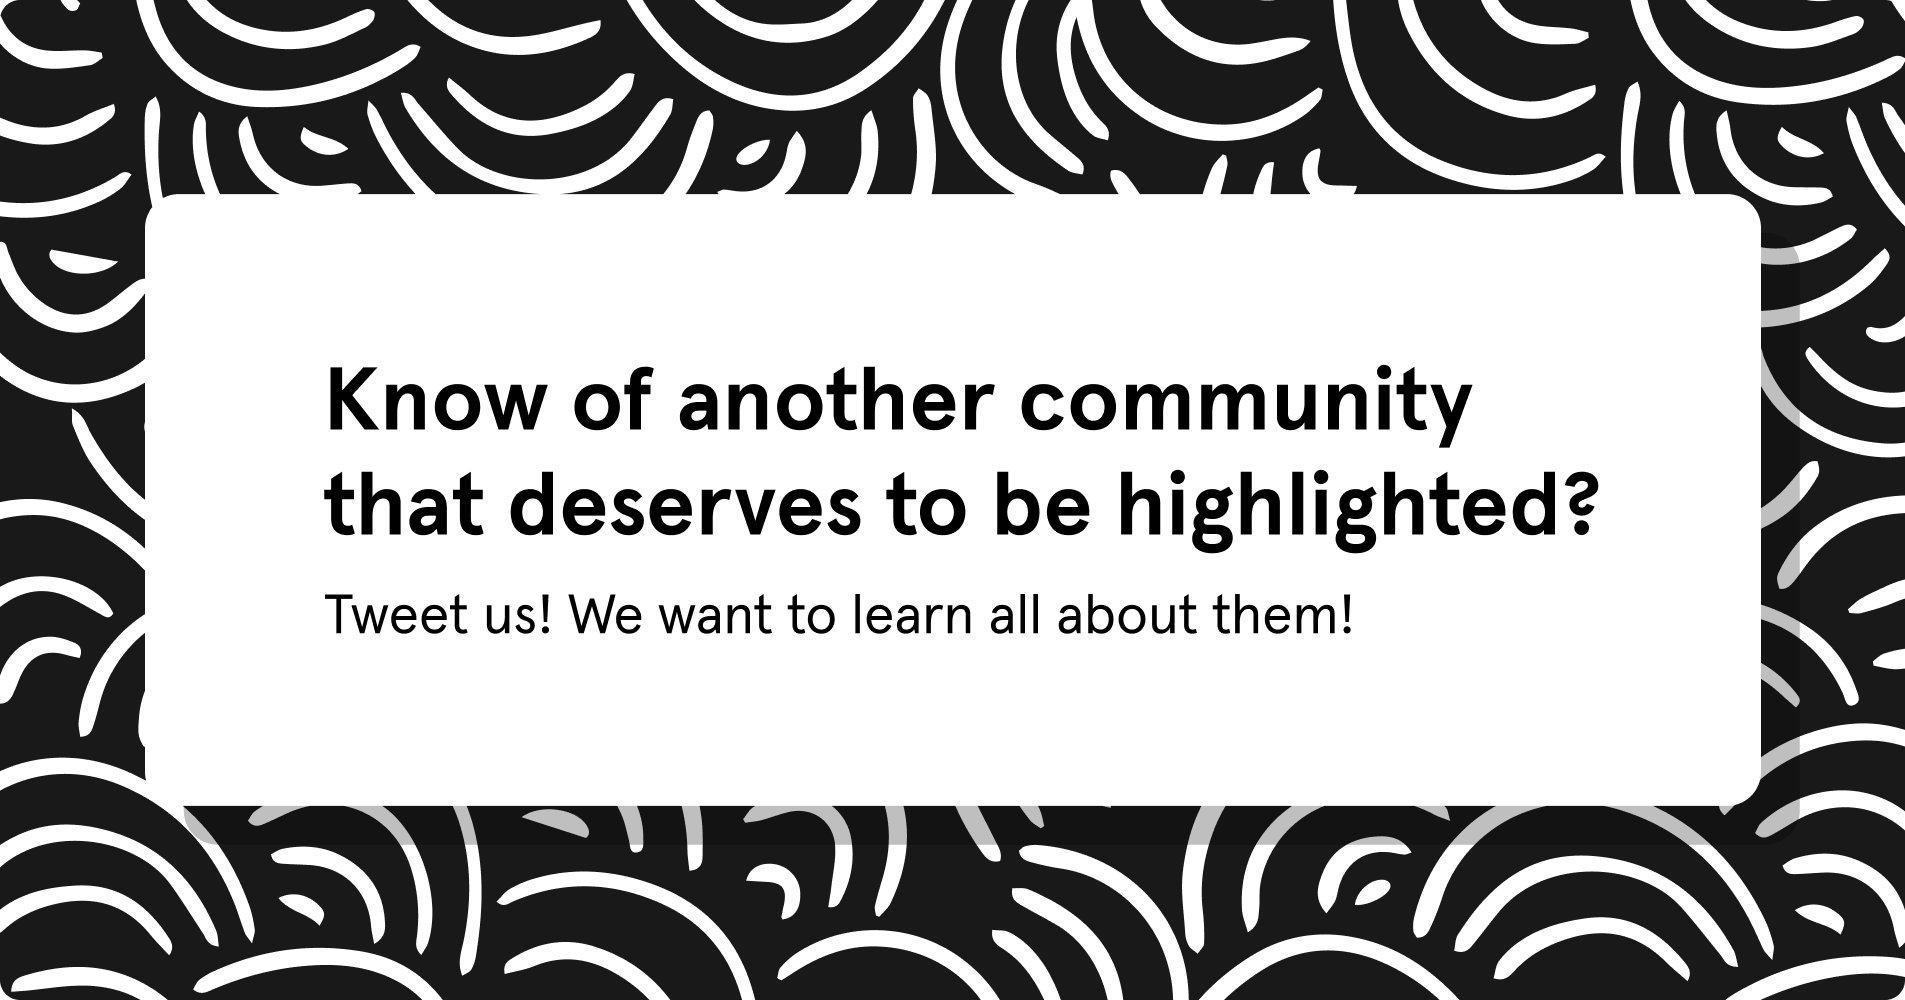 Know of another community that deserves to be highlighted? tweet us! We want to know all about them!